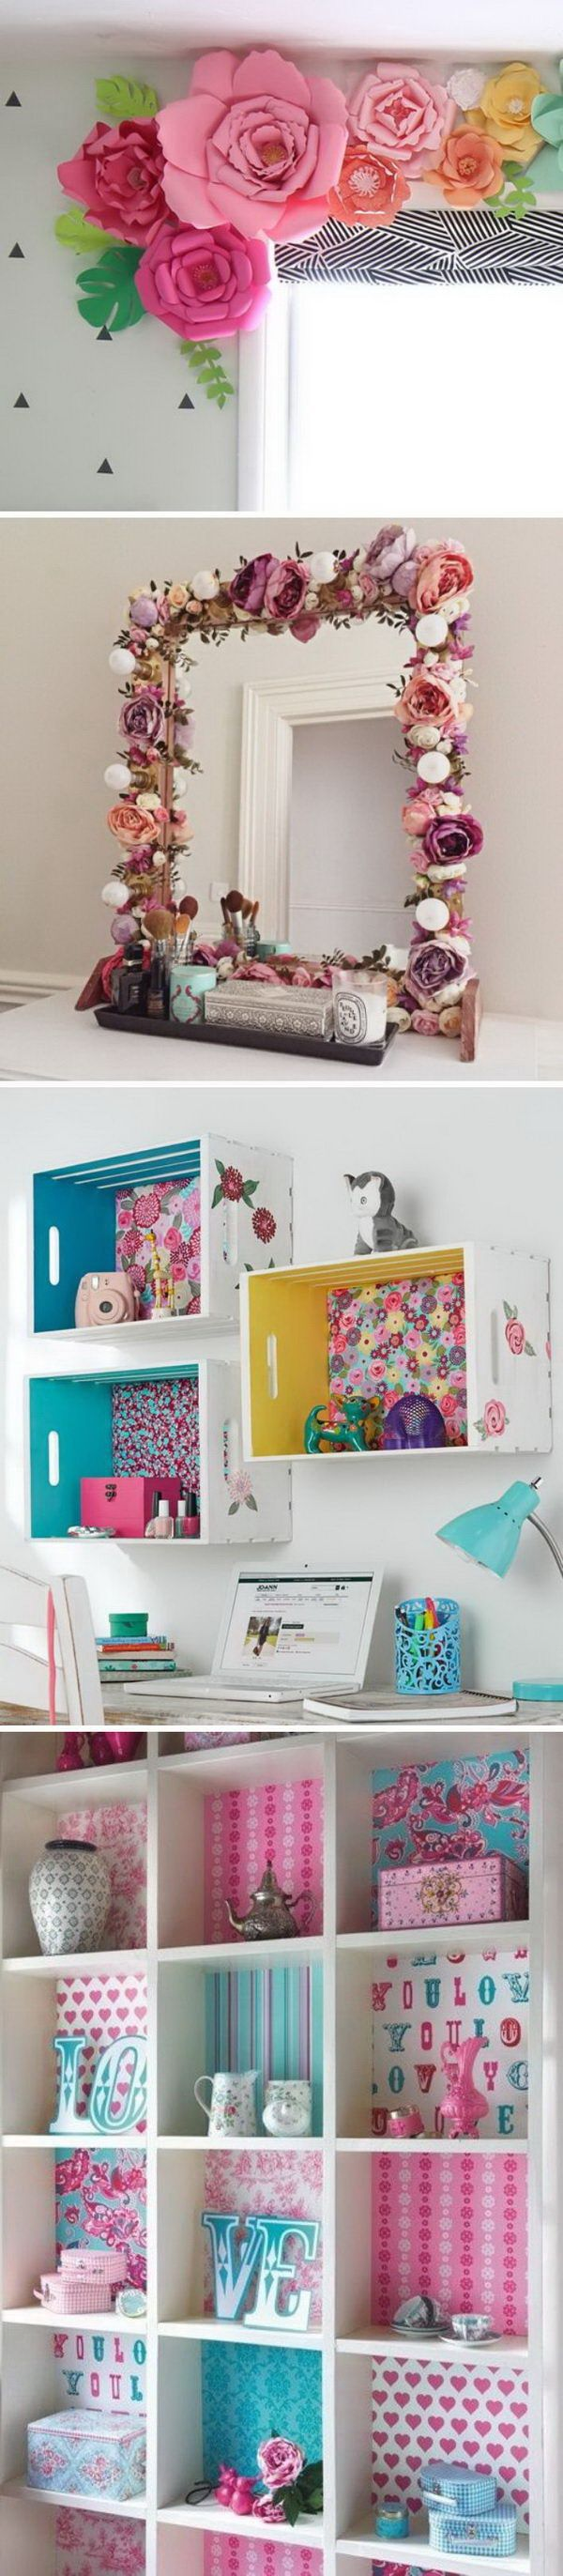 Awesome Diy Projects To Decorate A Girl S Bedroom Room Diy